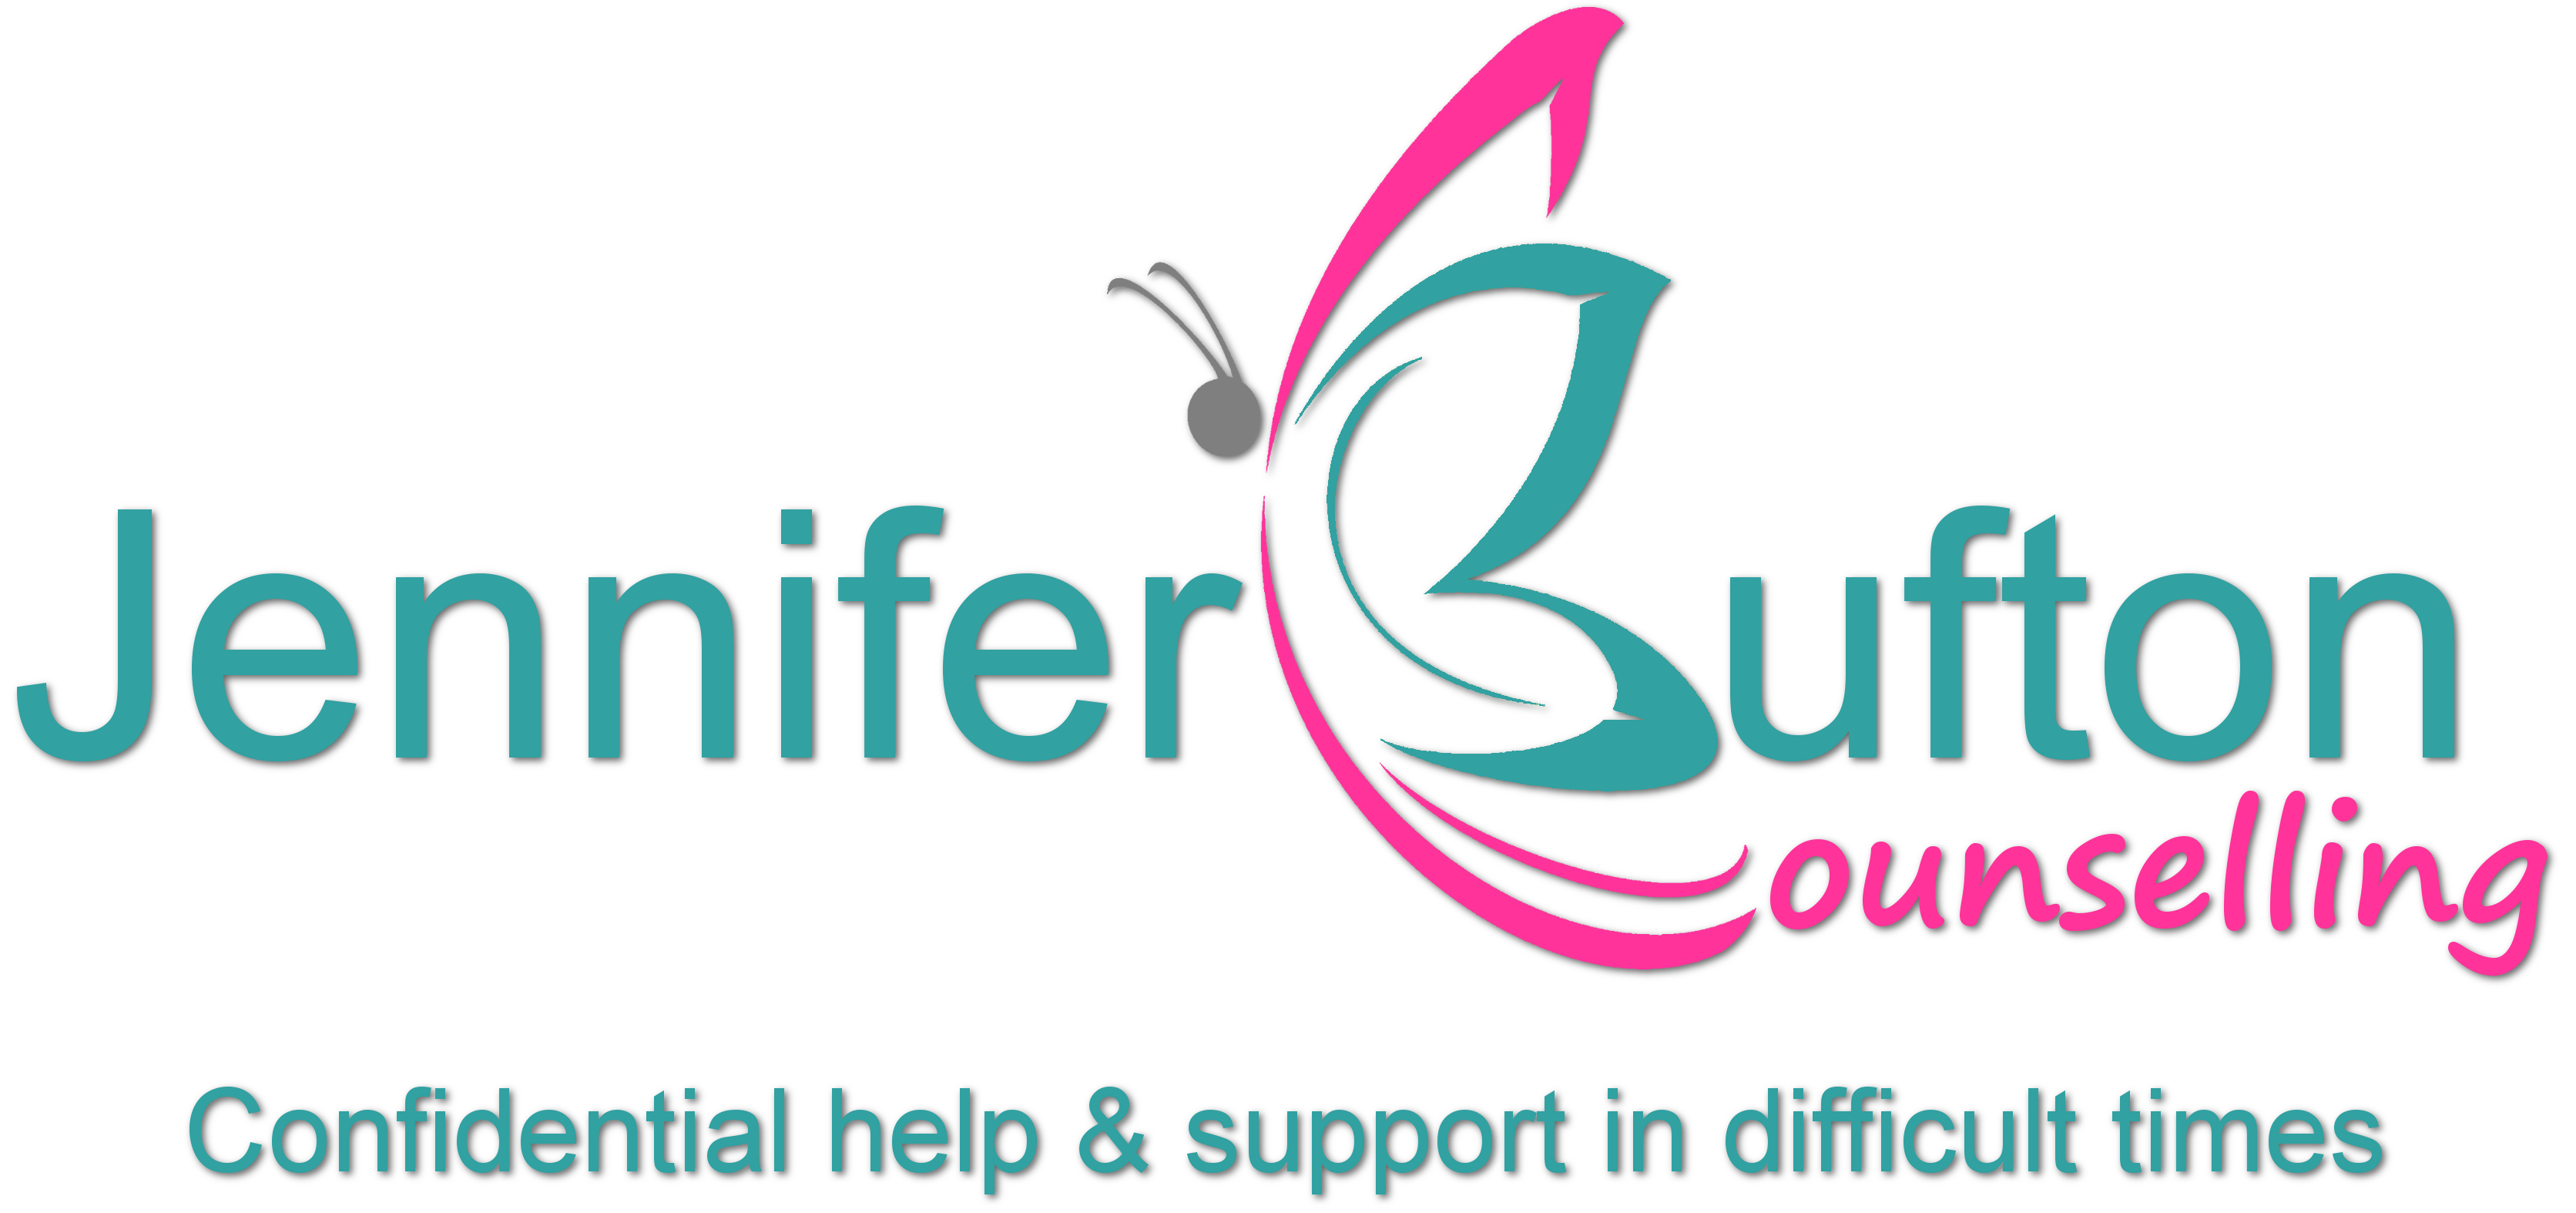 Jennifer Bufton Counselling